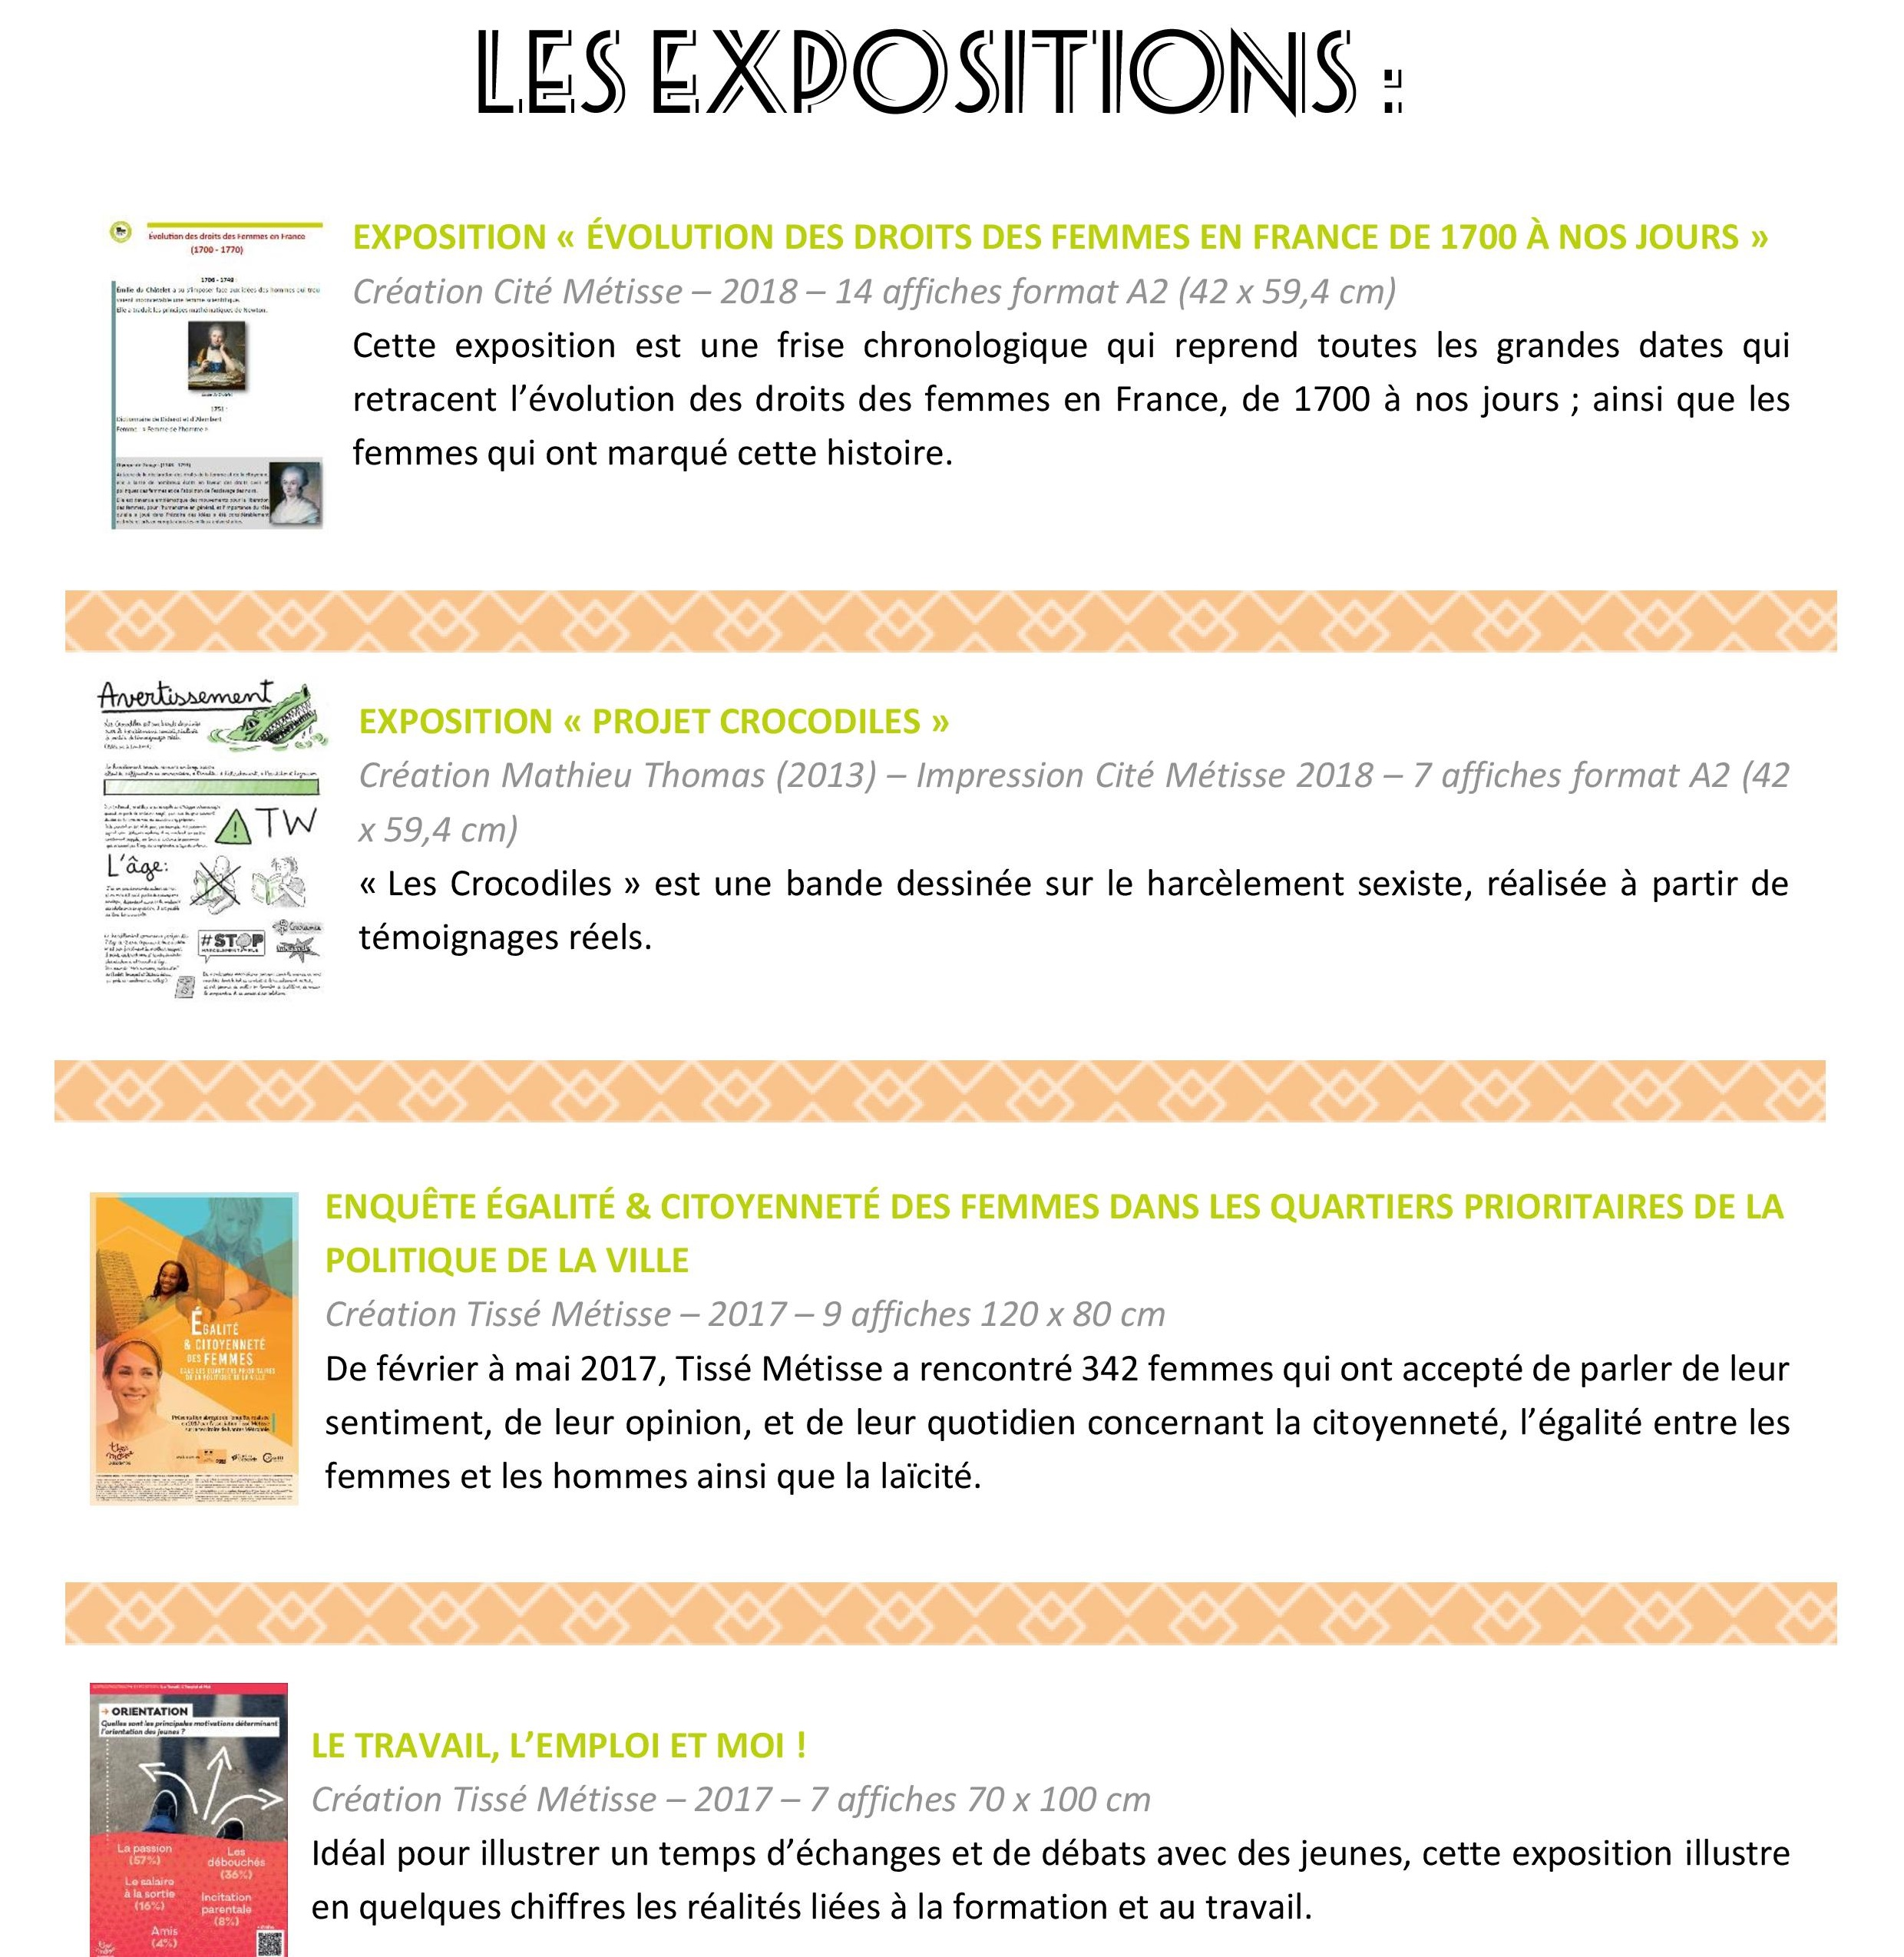 Sensibilisation par l'image - Expositions & citations.